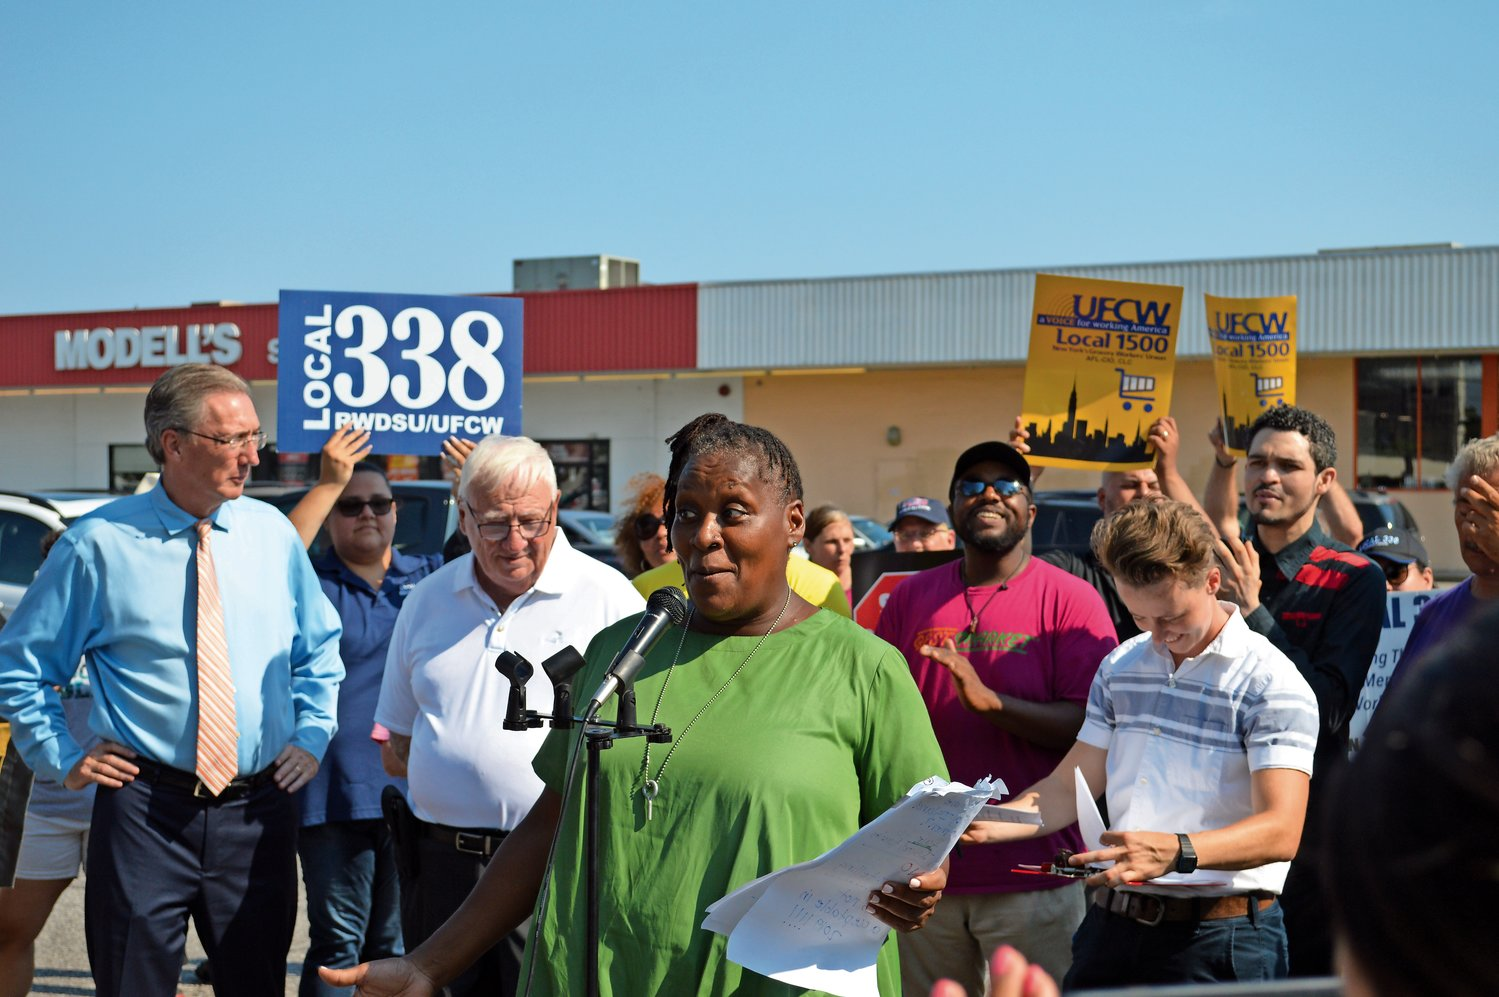 Wendy Douglas, a union member, spoke about the importance of stable hours for full-time employees and living wages.